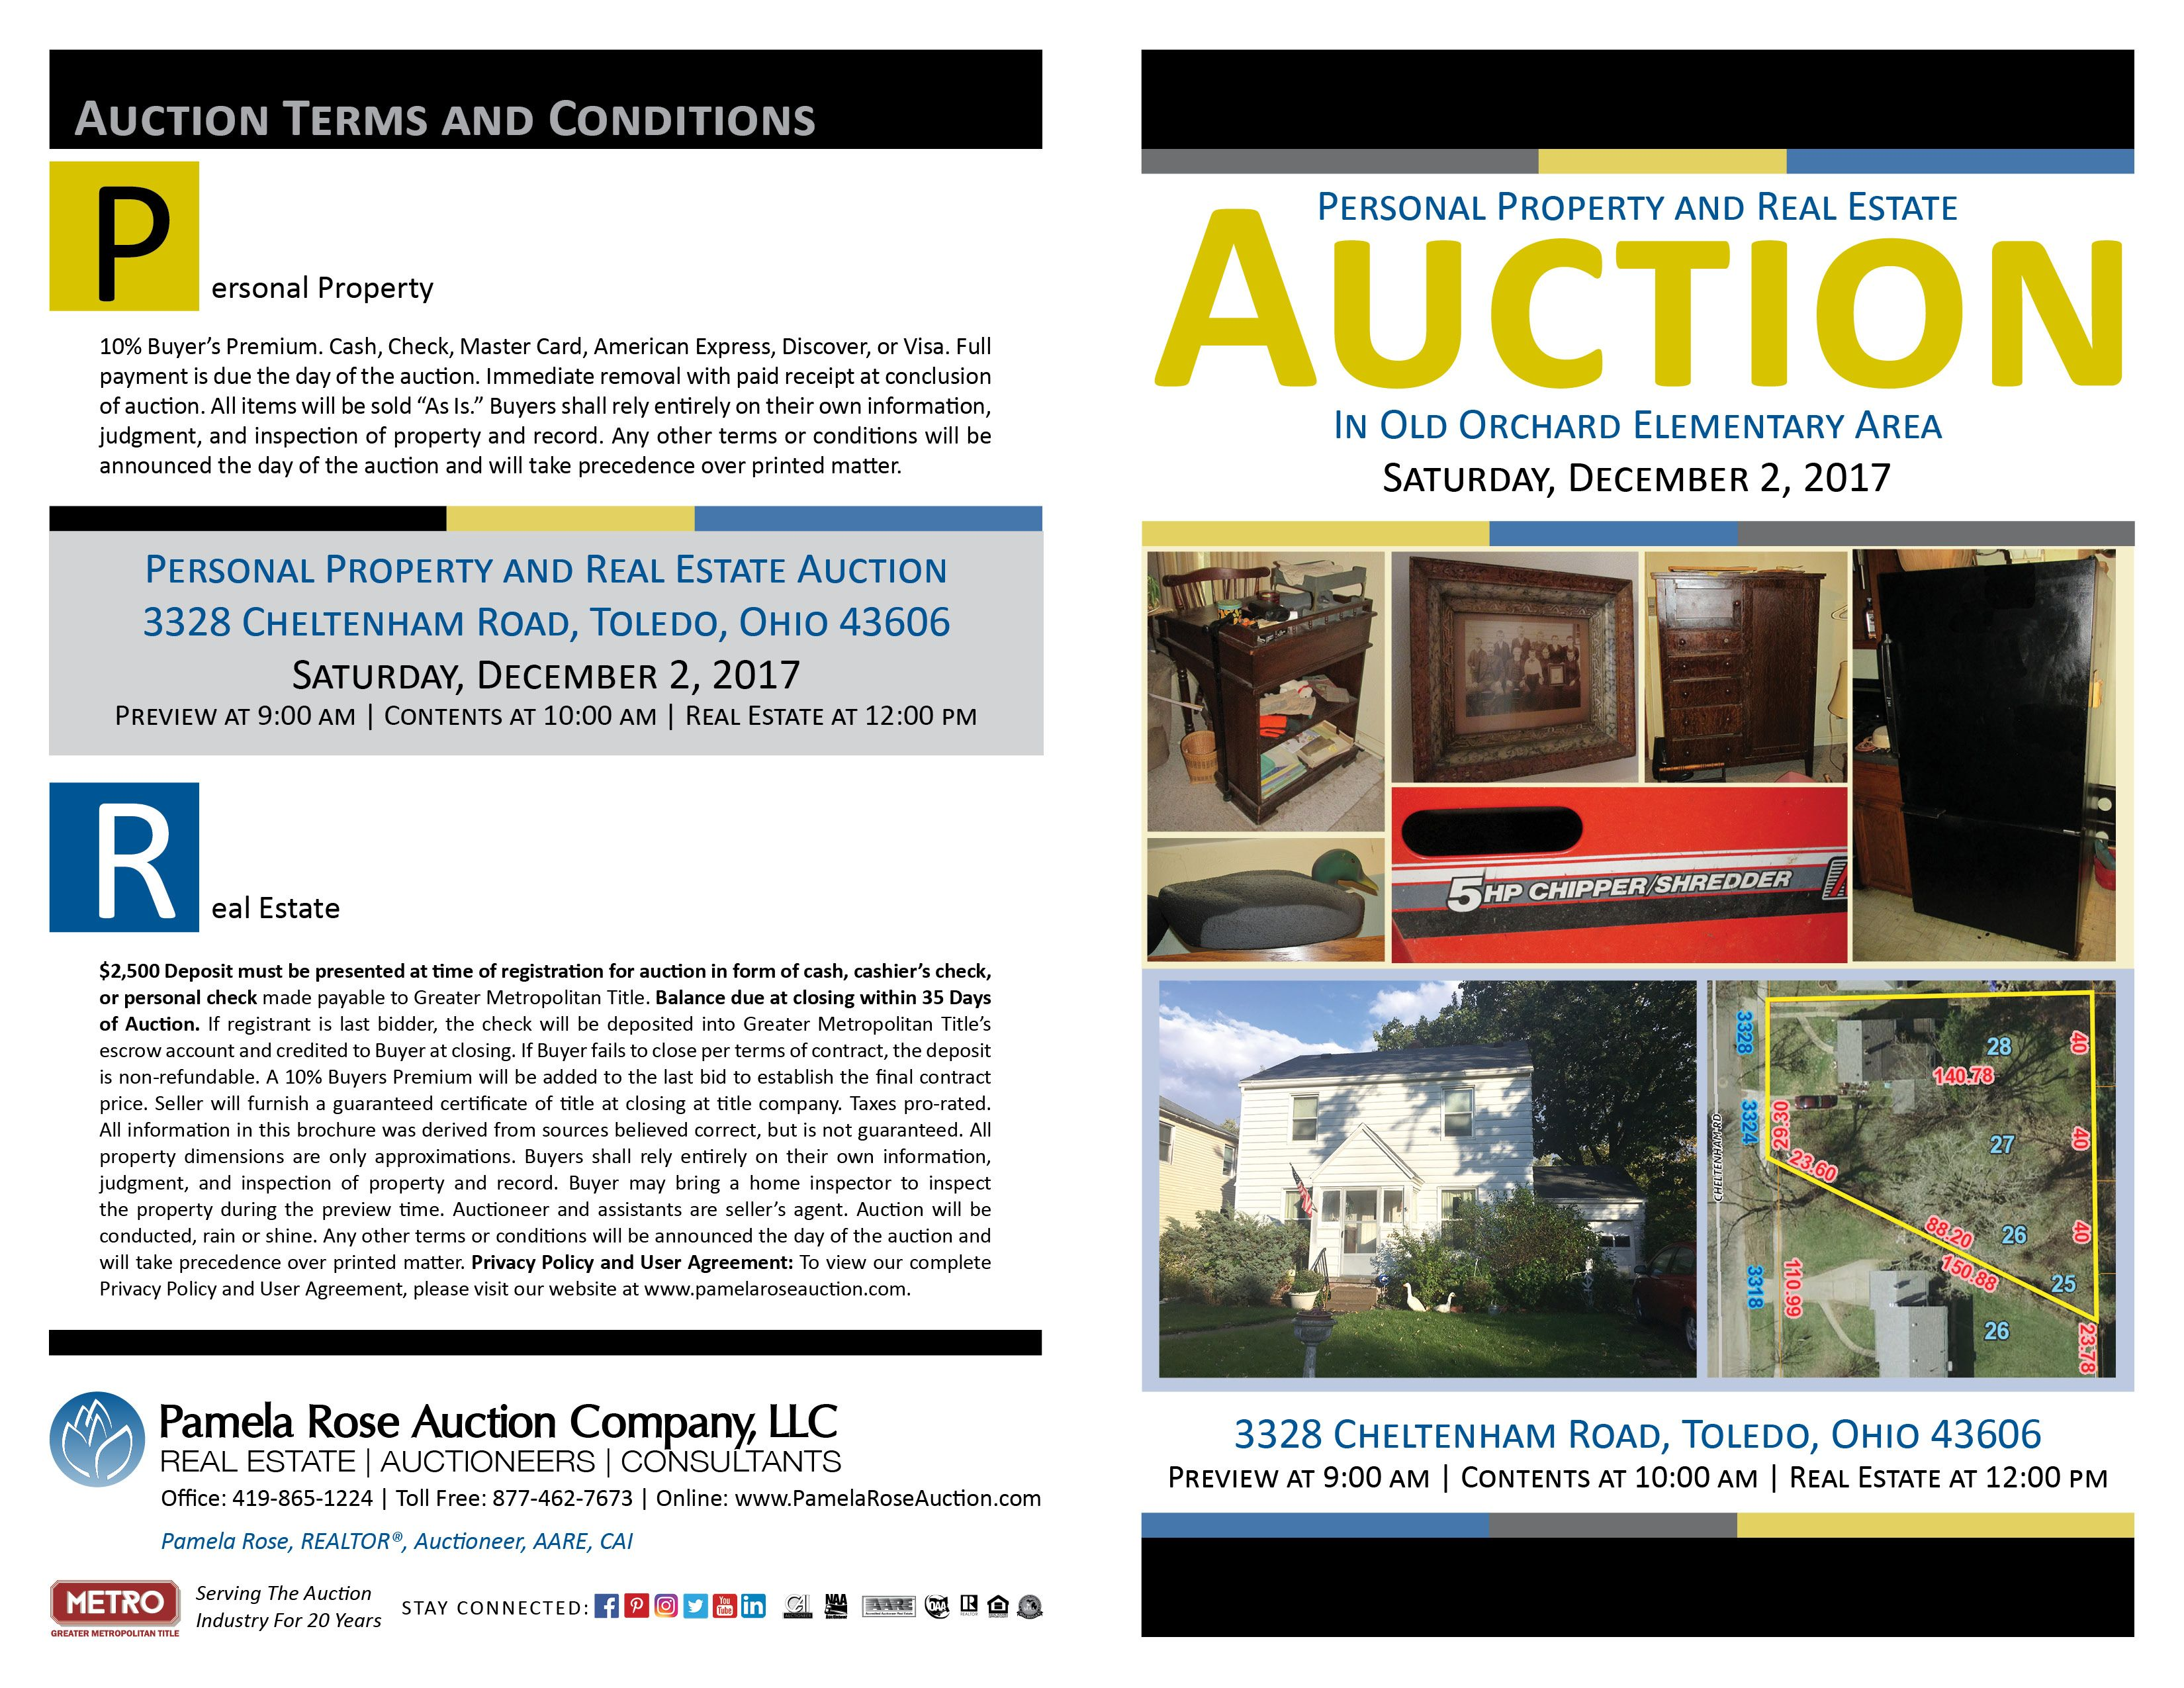 Content Auction at 10:00 am  Home is full of household items